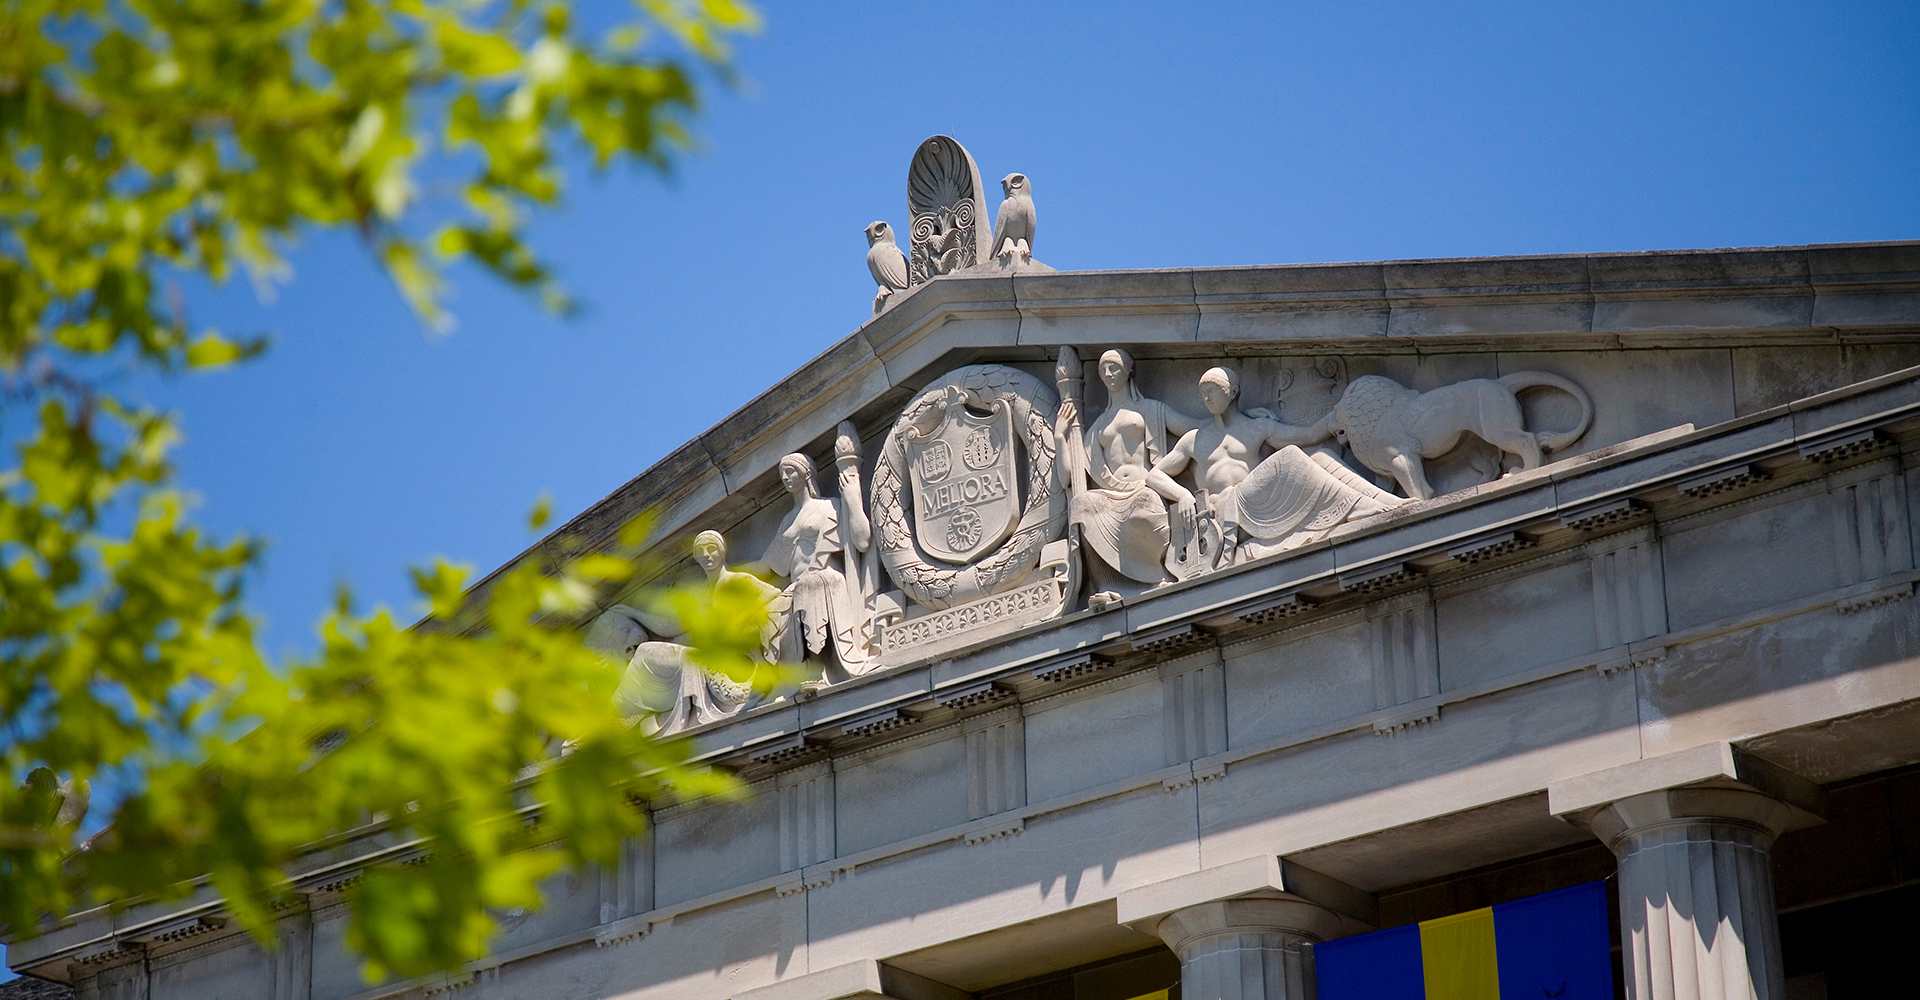 frieze of rush rhees library with foreground tree branches